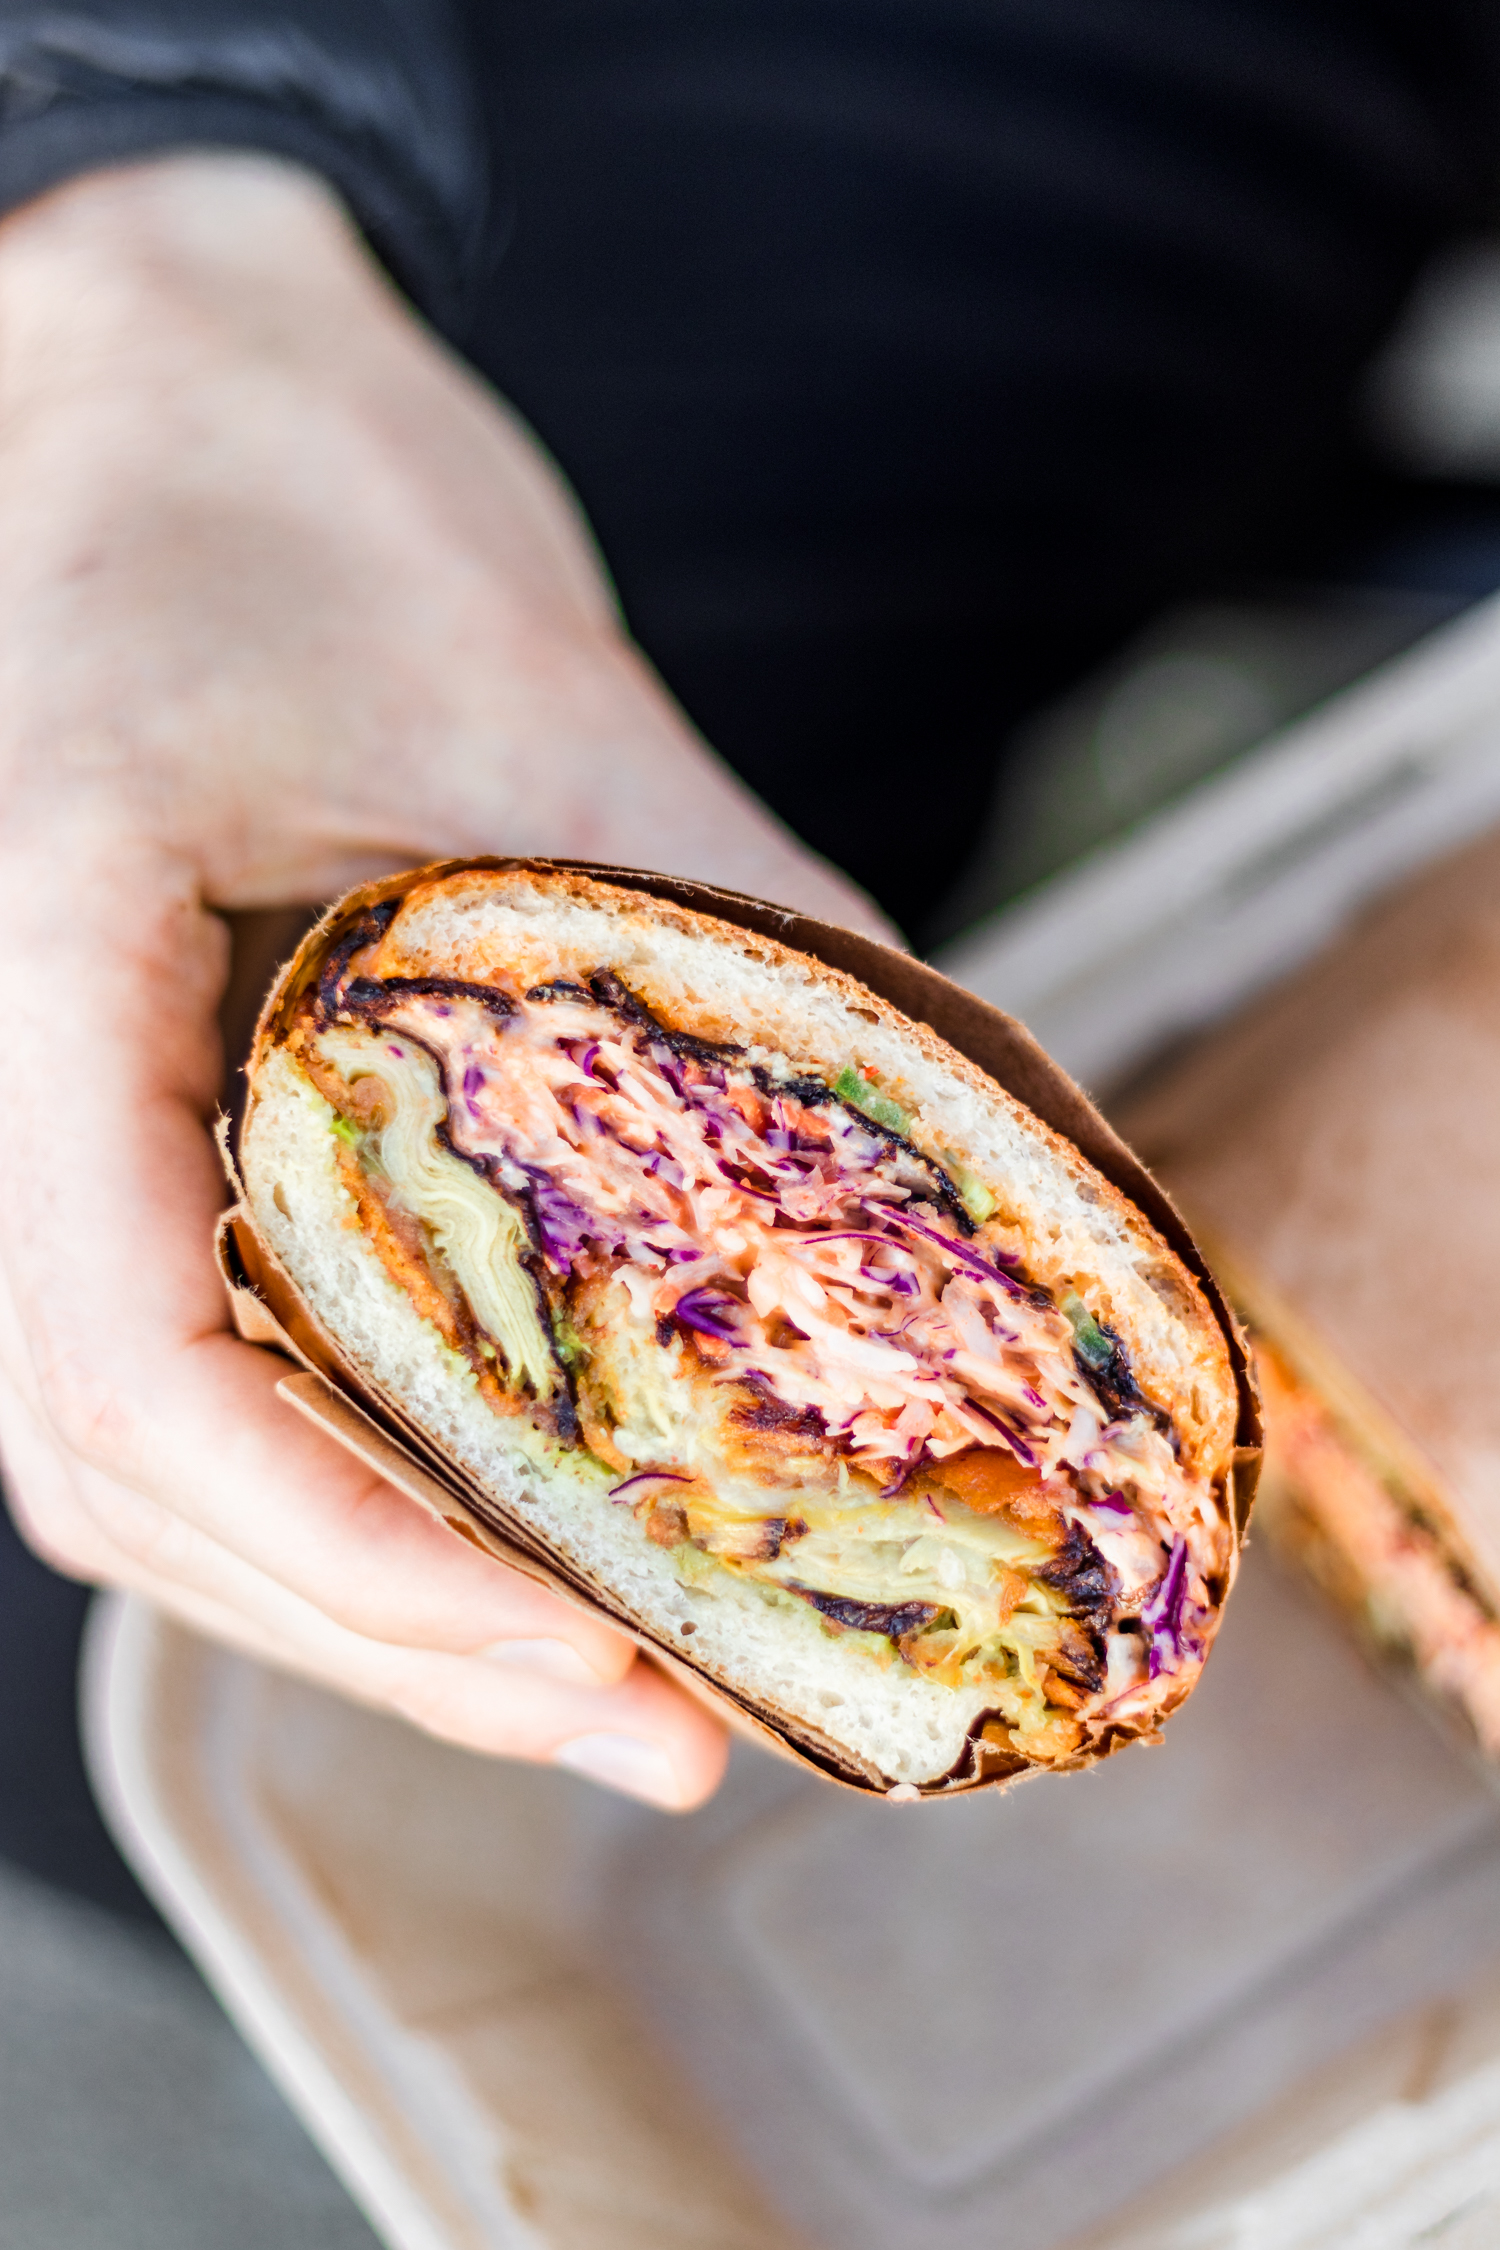 Southern Fried Artichoke Sandwich at The Arbor